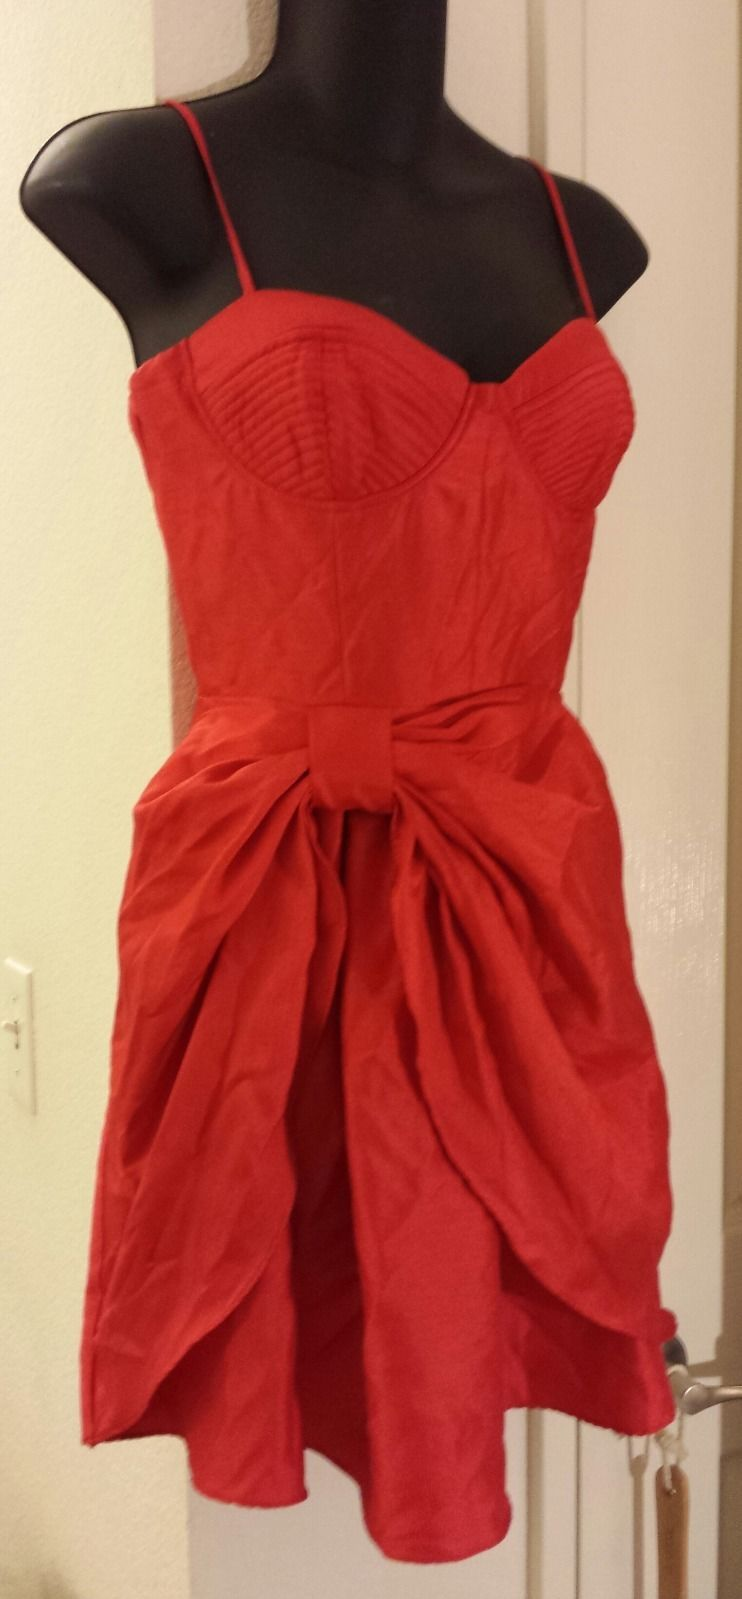 NWT 21 Limited Edition Vibrant RED Moulded Bra Dress M 6